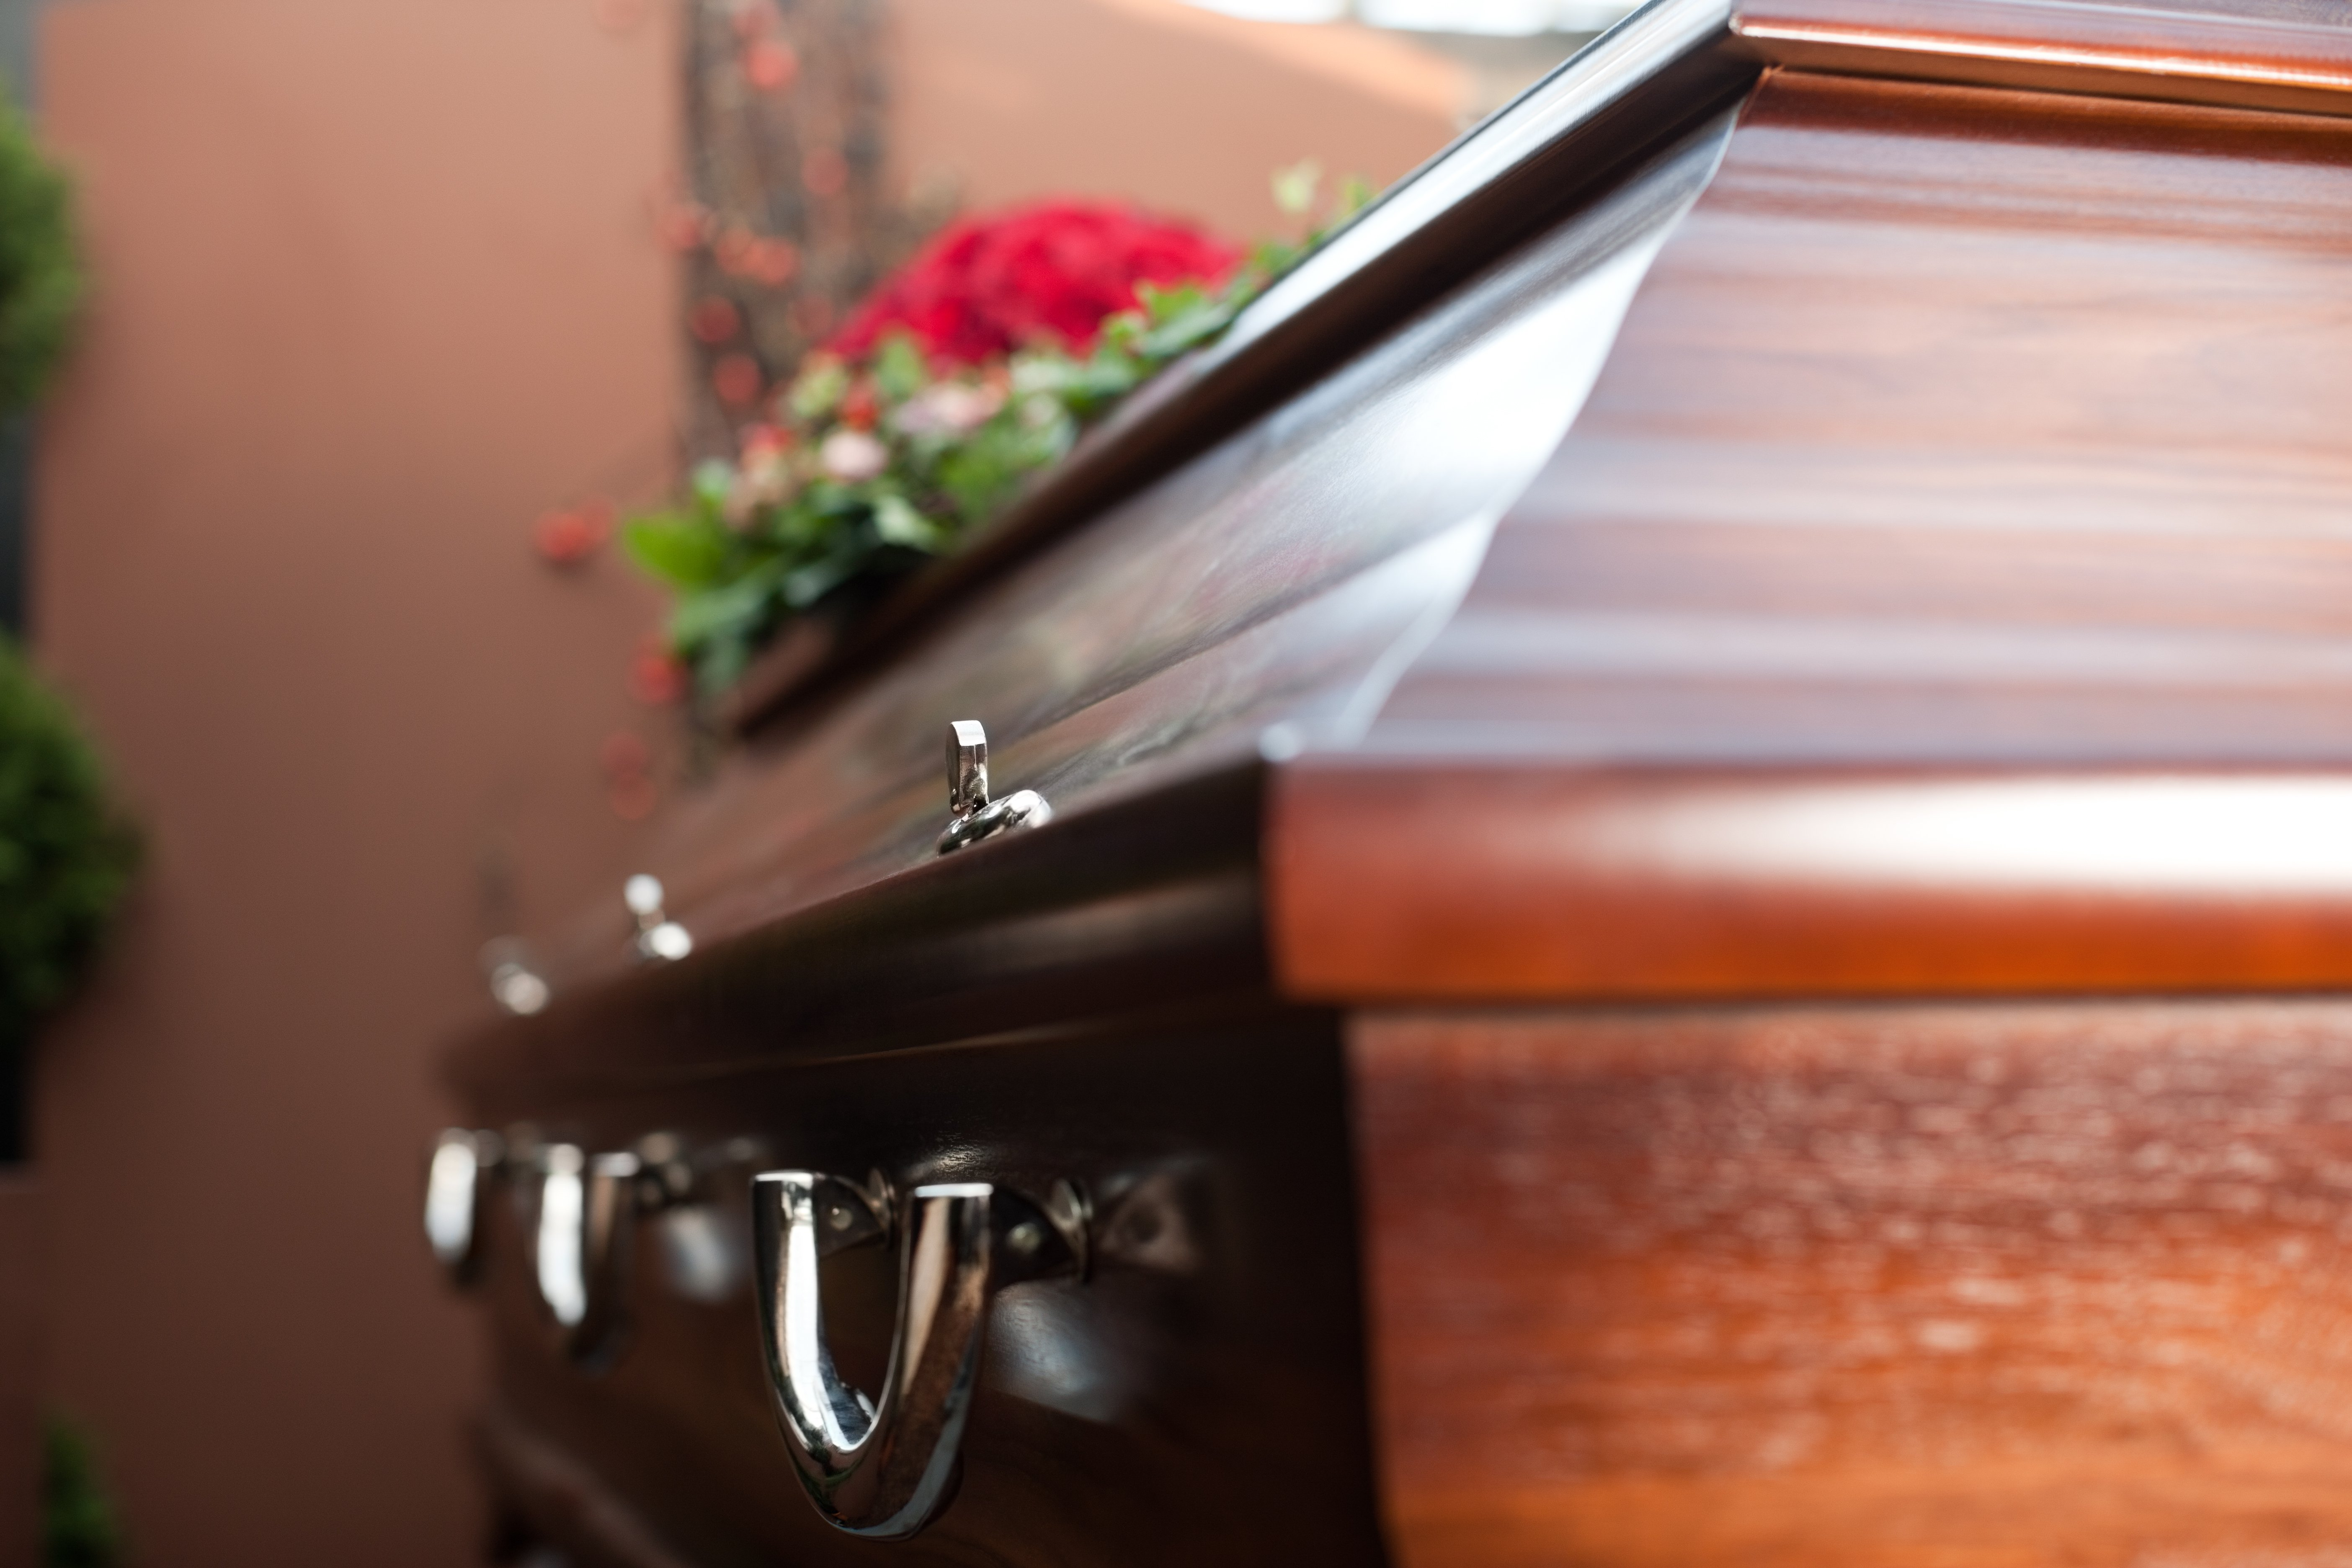 A coffin with red flowers on top. | Source: Shutterstock